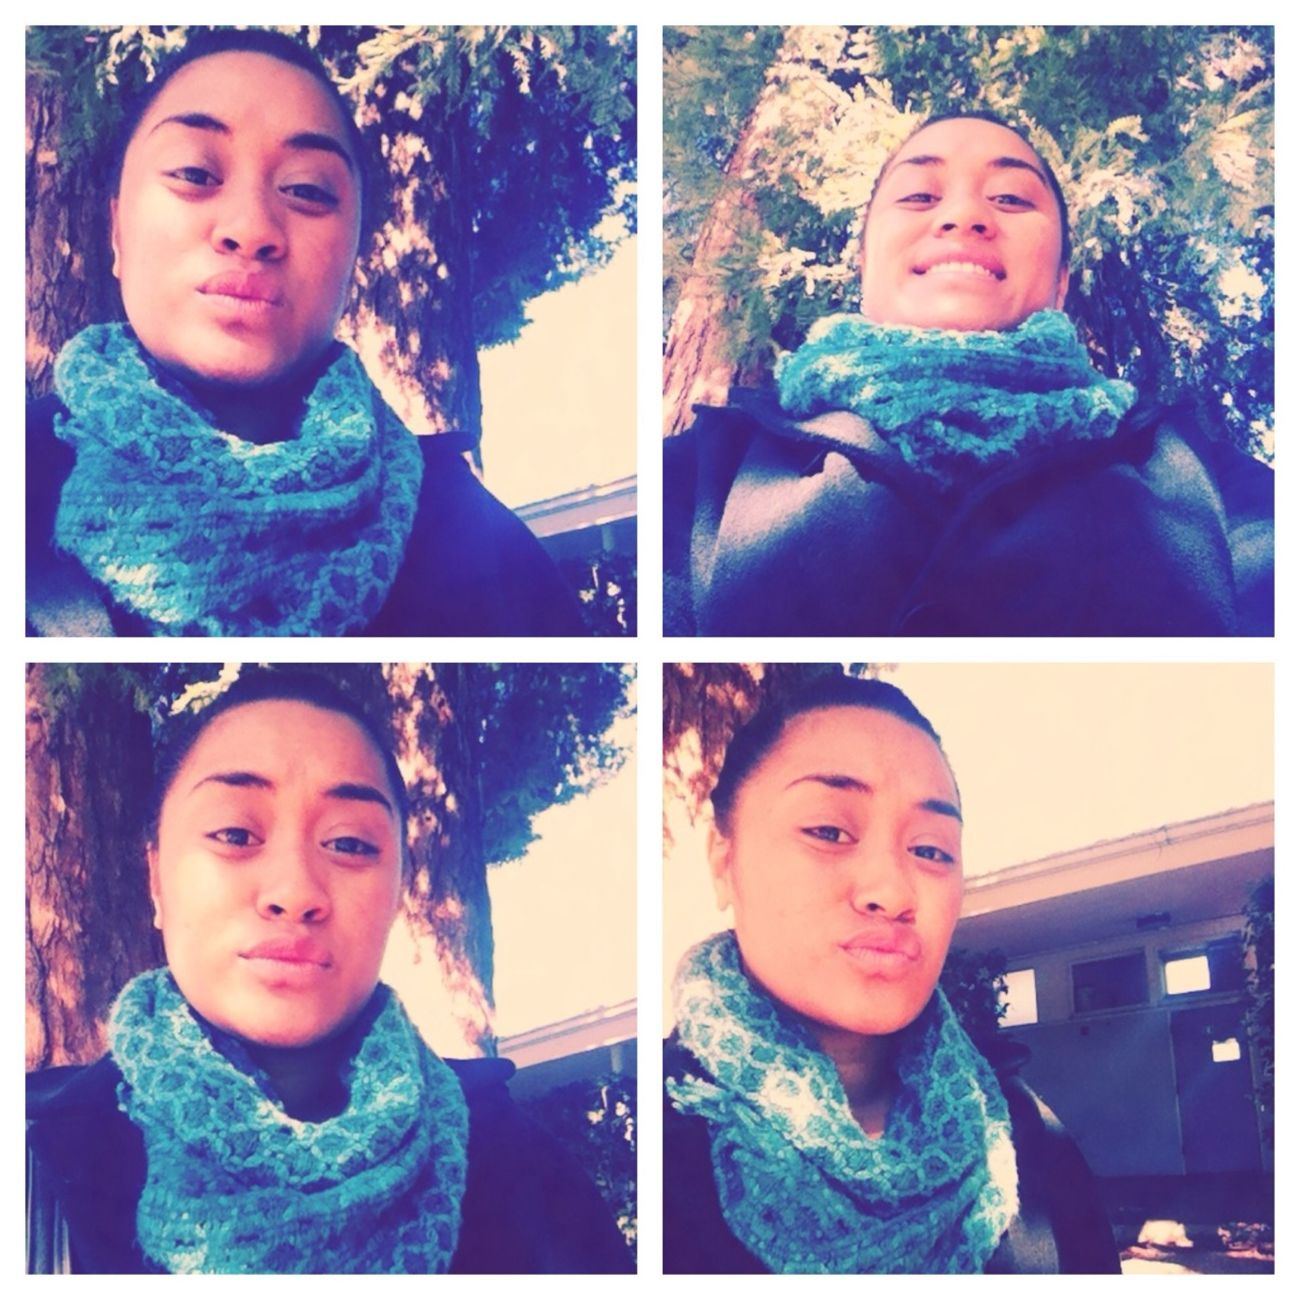 chilln at school:)